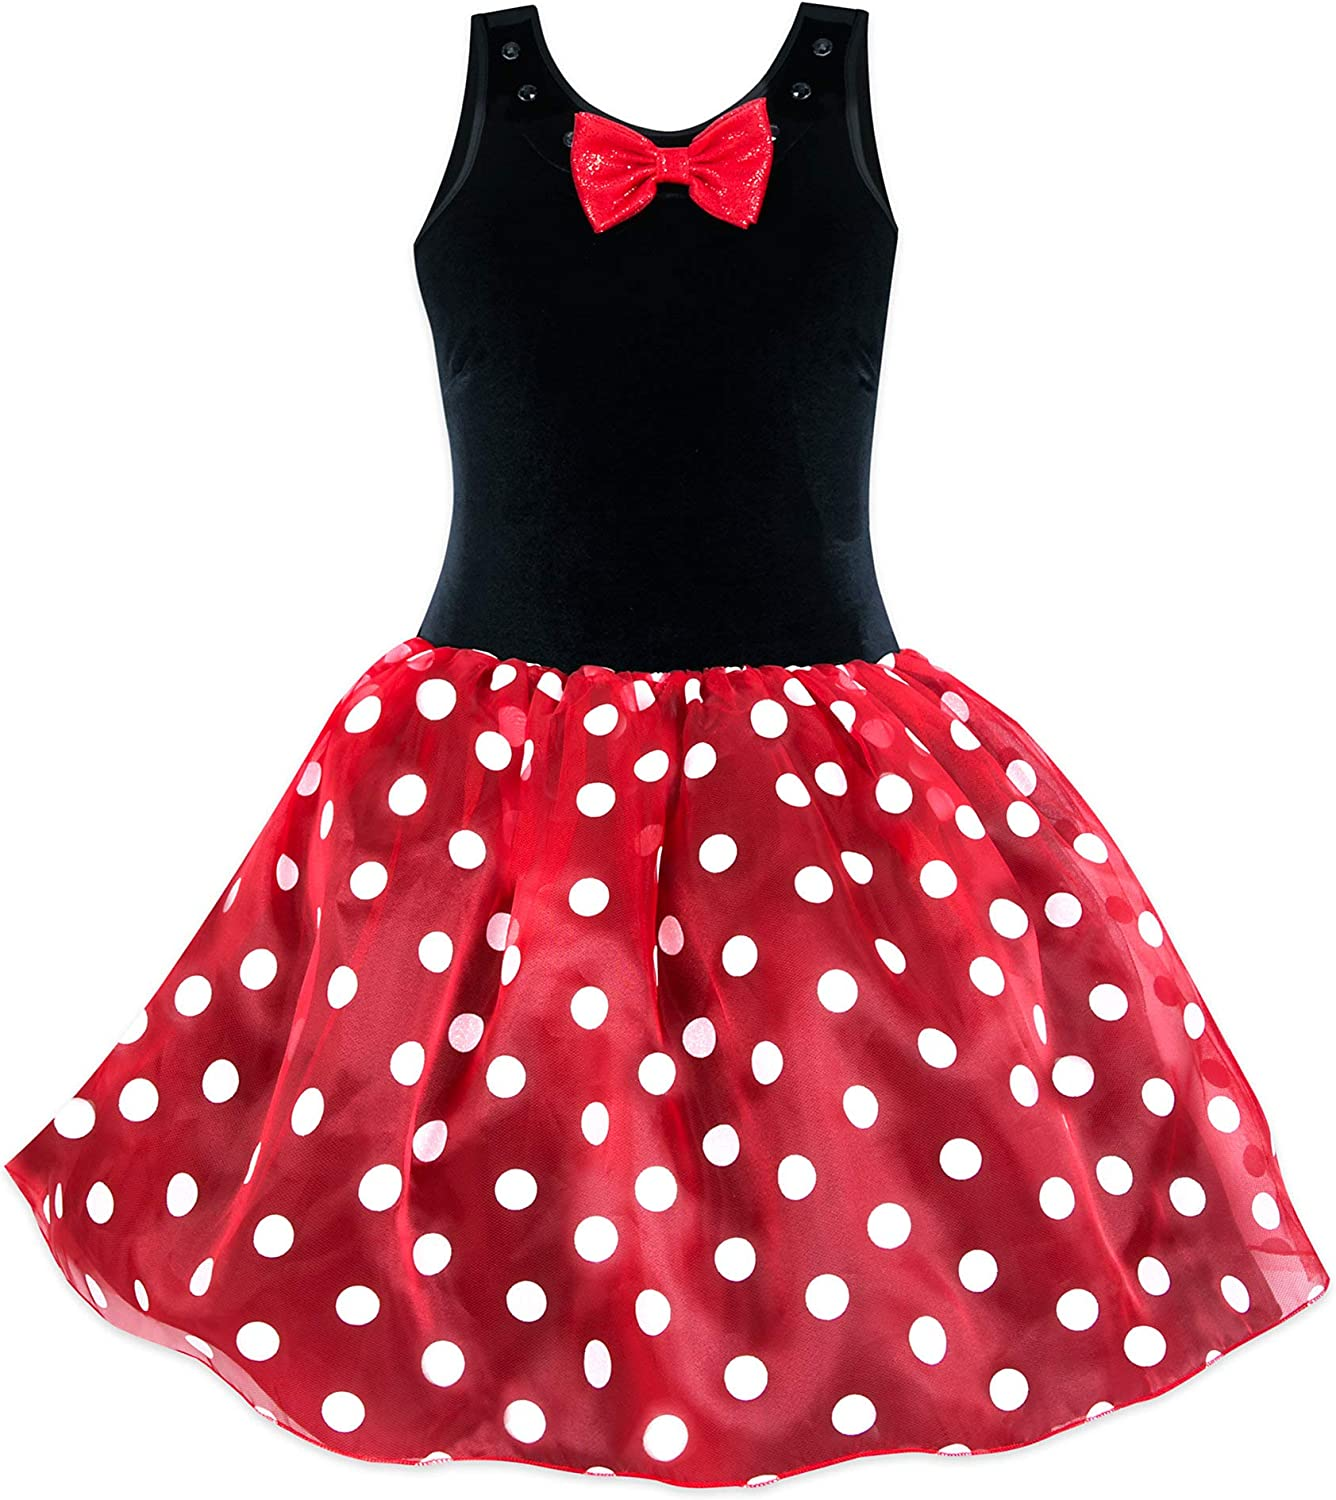 Disney - Disfraz de Minnie Mouse con tutú para Adultos, Color Rojo ...